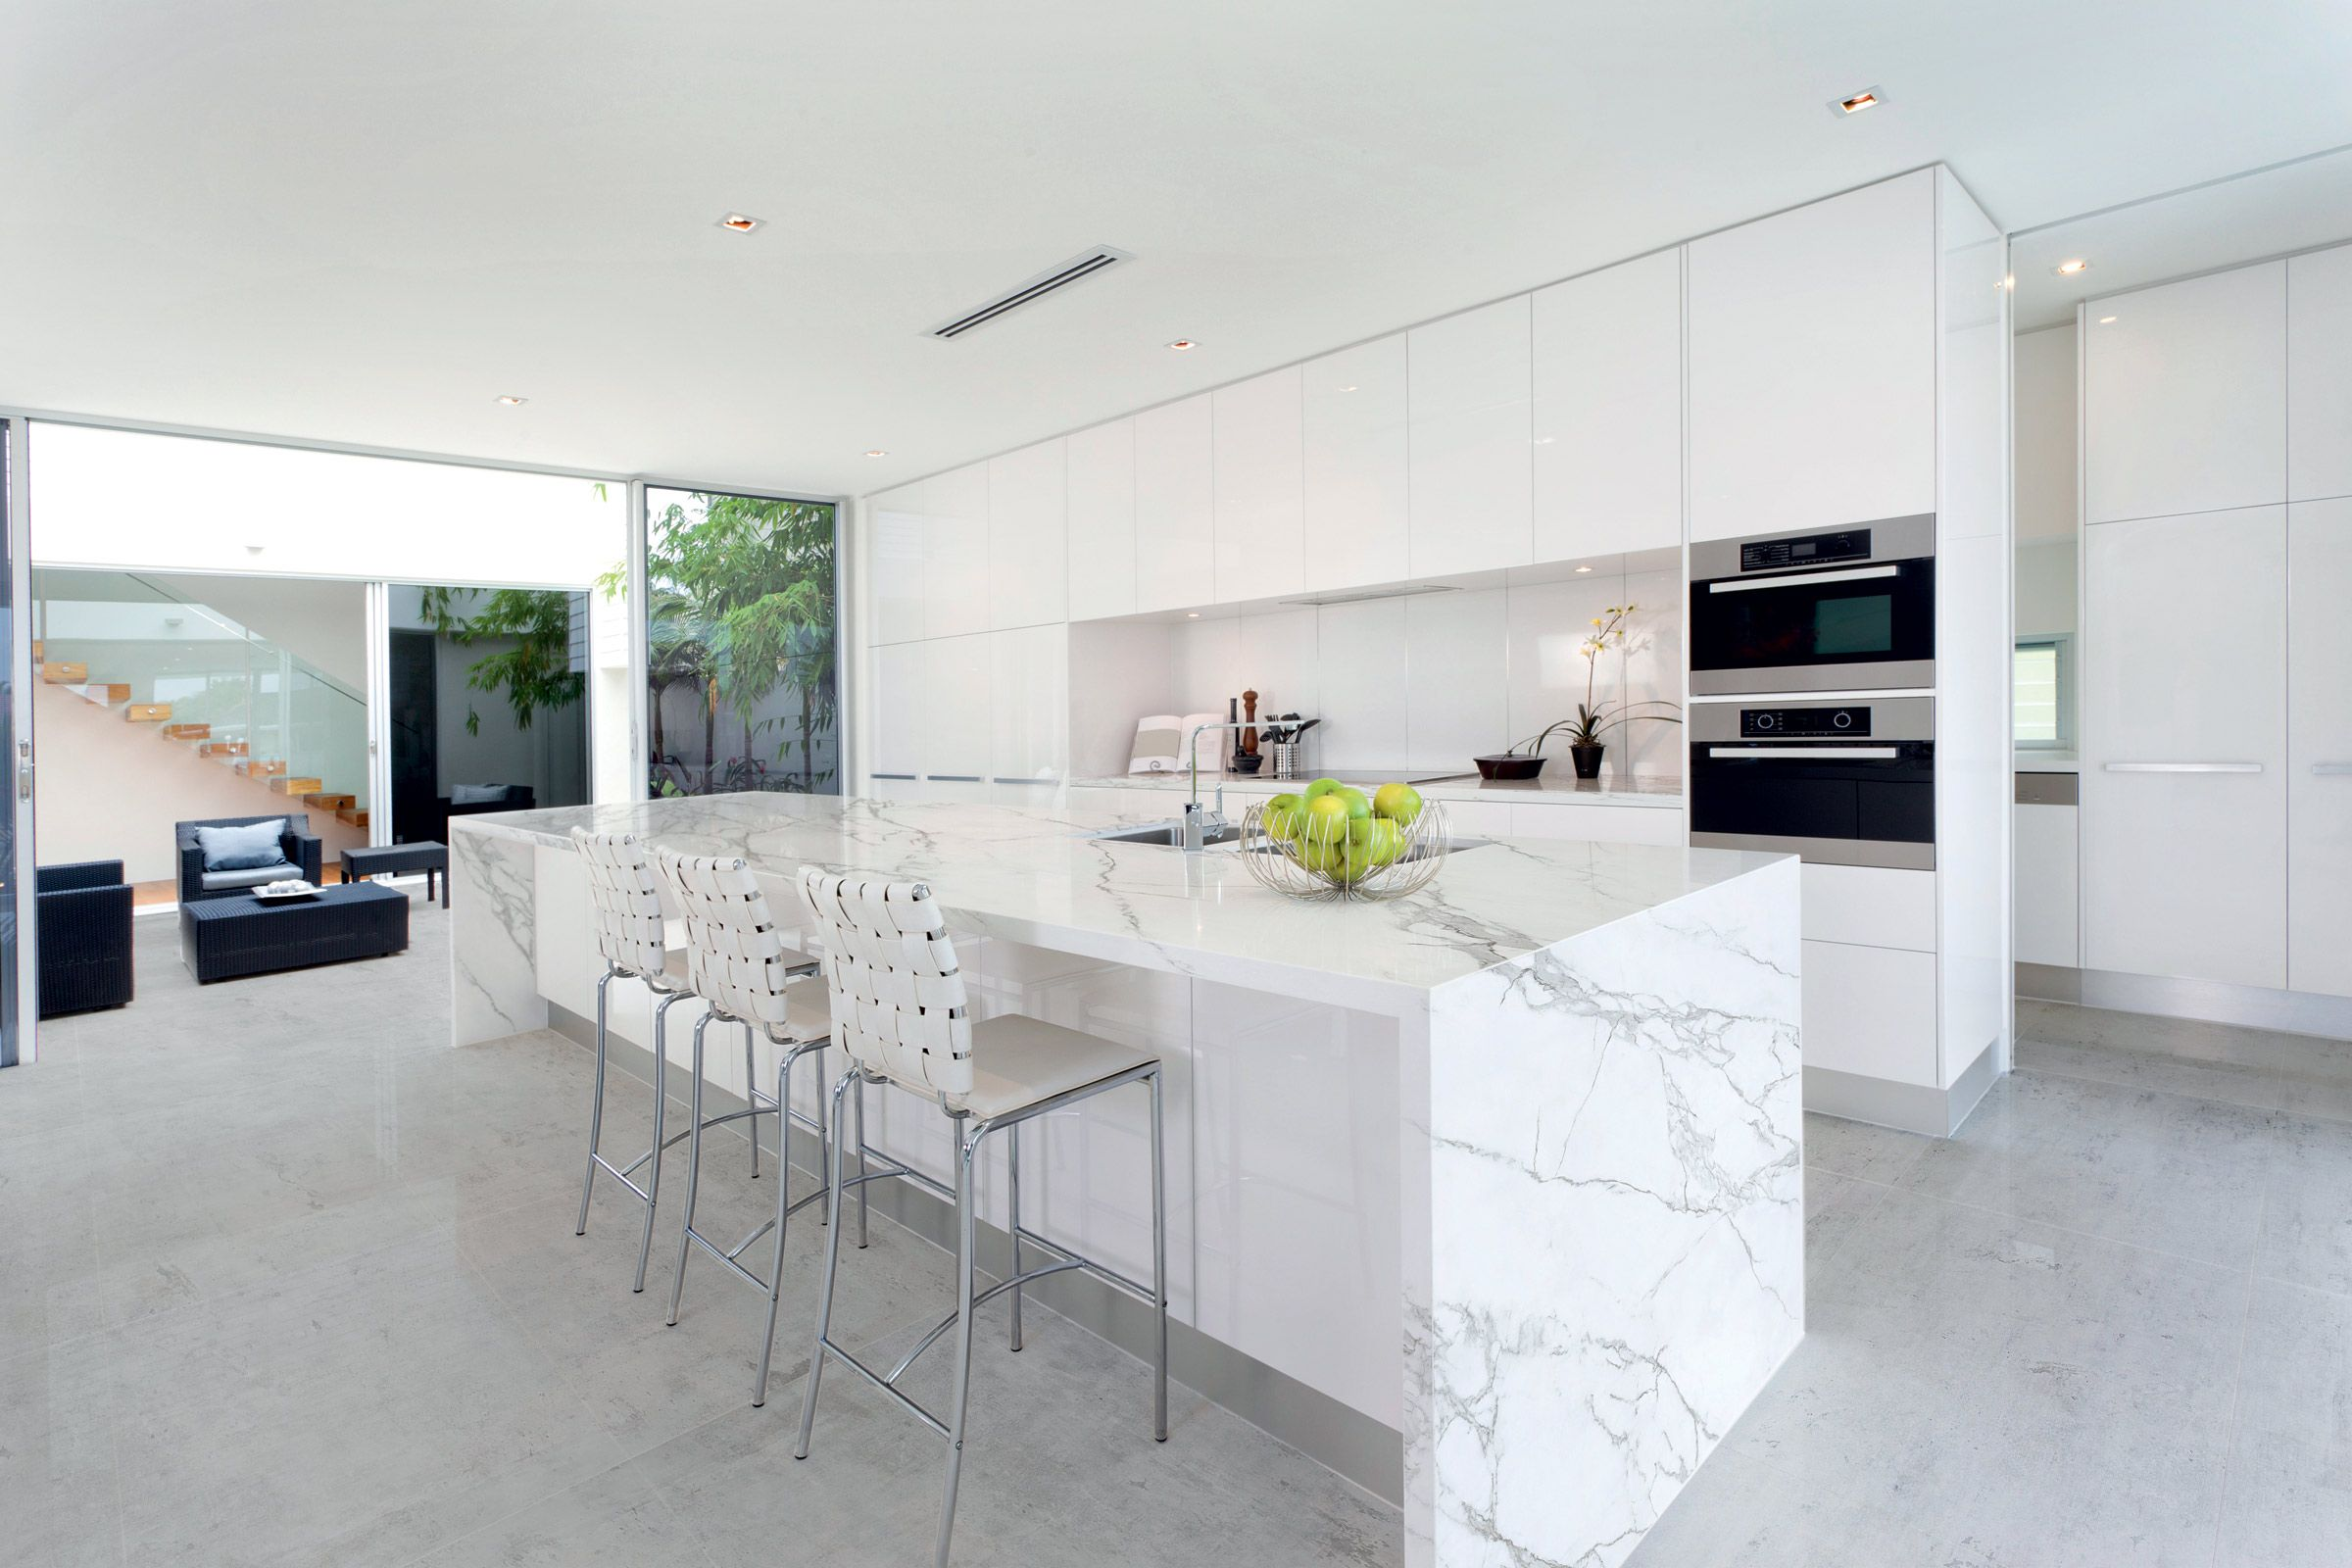 neolith-porcelain-countertops-kitchen-neolith-porcelain-slab-countertop-b38551eed78ae552